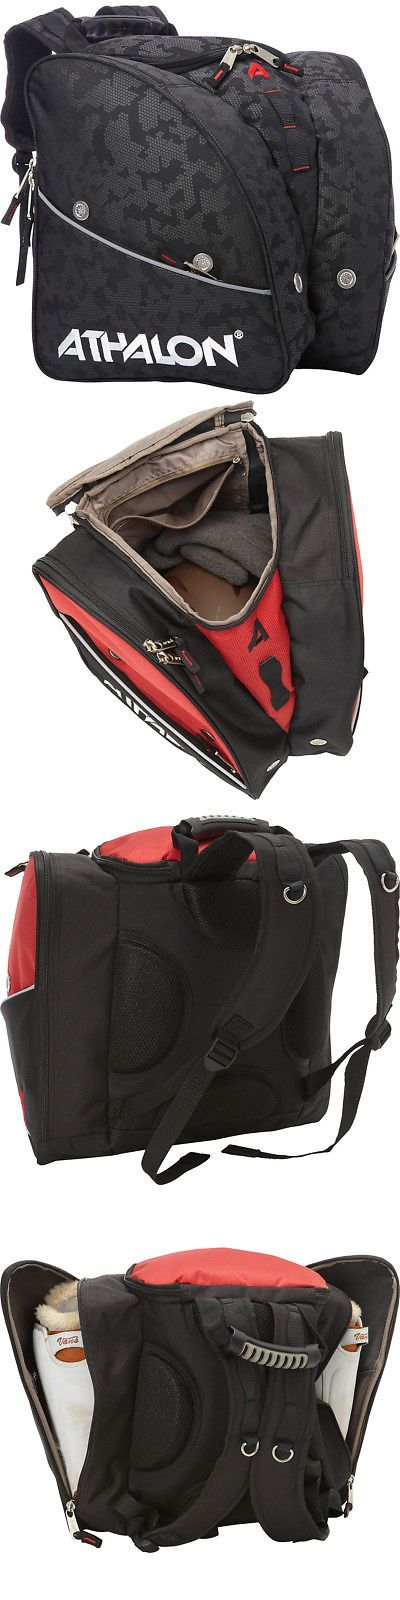 Bags and Backpacks 21229: Athalon Tri-Athalon Kids Boot Bag 3 Colors Ski And Snowboard Bag New -> BUY IT NOW ONLY: $75.99 on eBay!